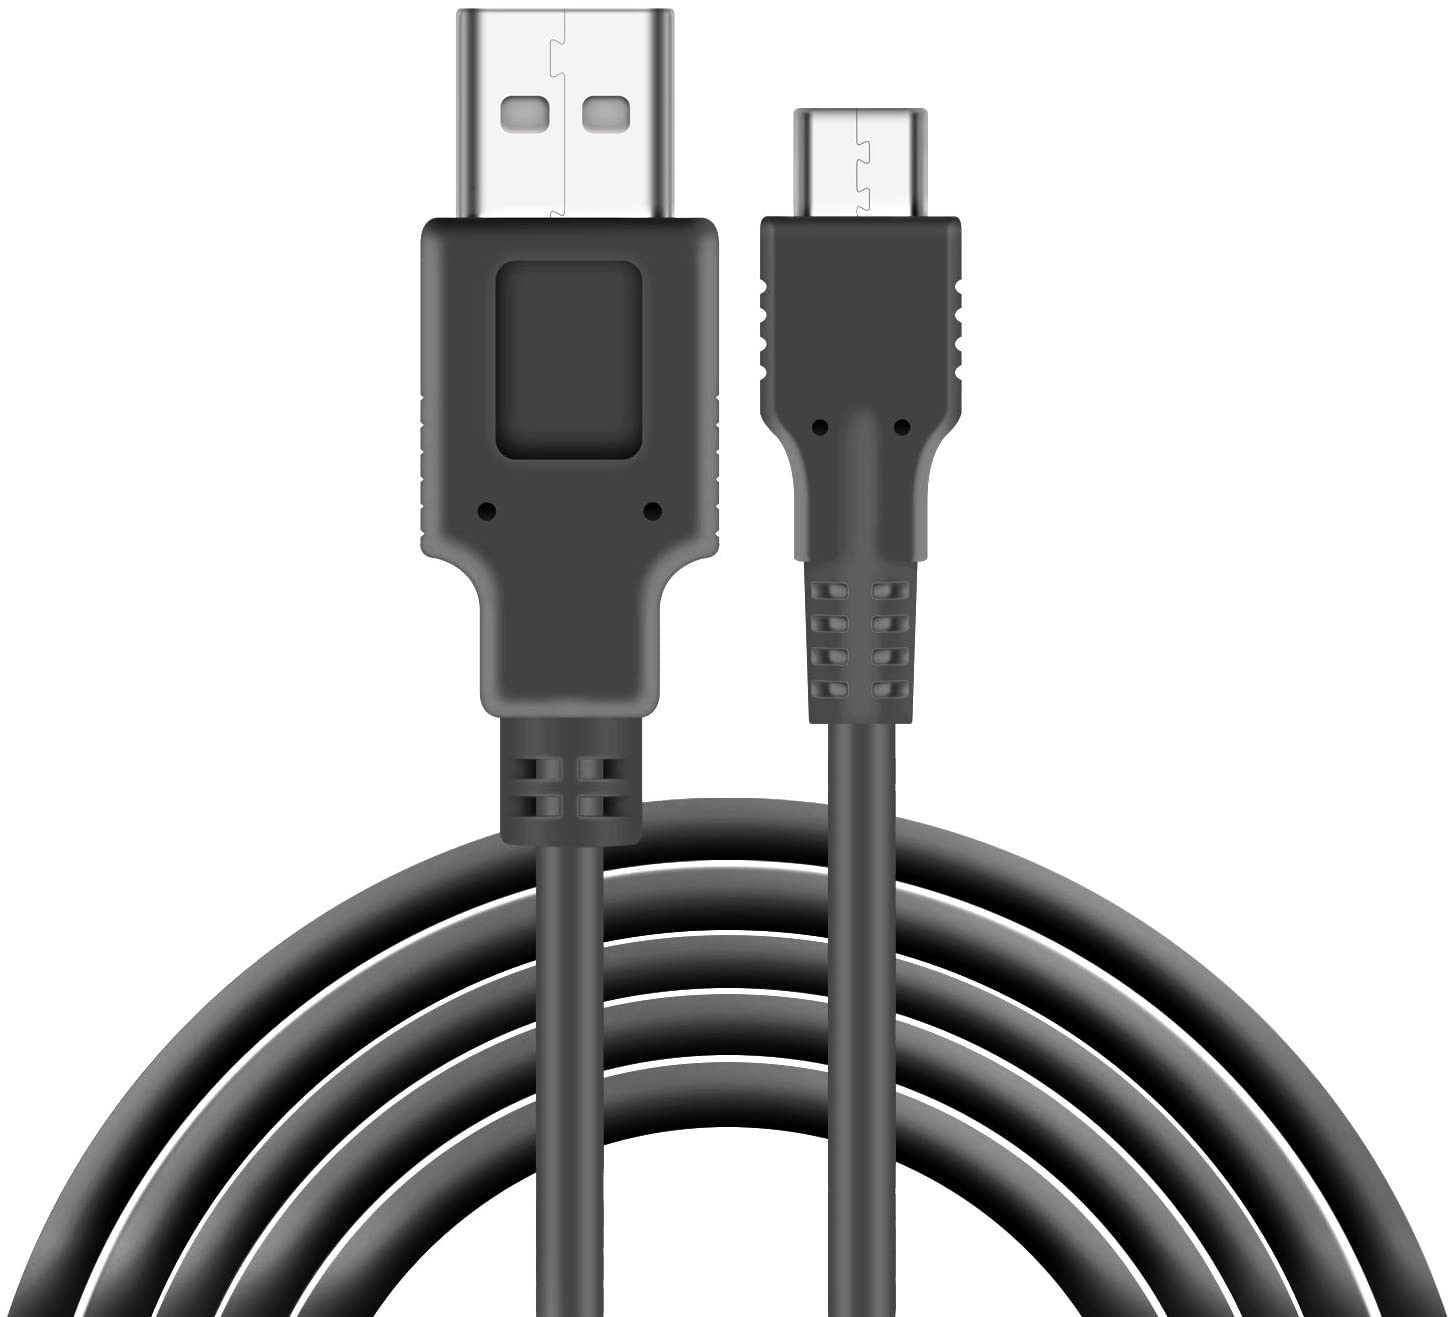 Charger Compatible with Nintendo Switch, Charging Cable Compatible with Nintendo Switch, Charger Cable Compatible with Nintendo Switch Pro Controllers - Black (4.92ft)